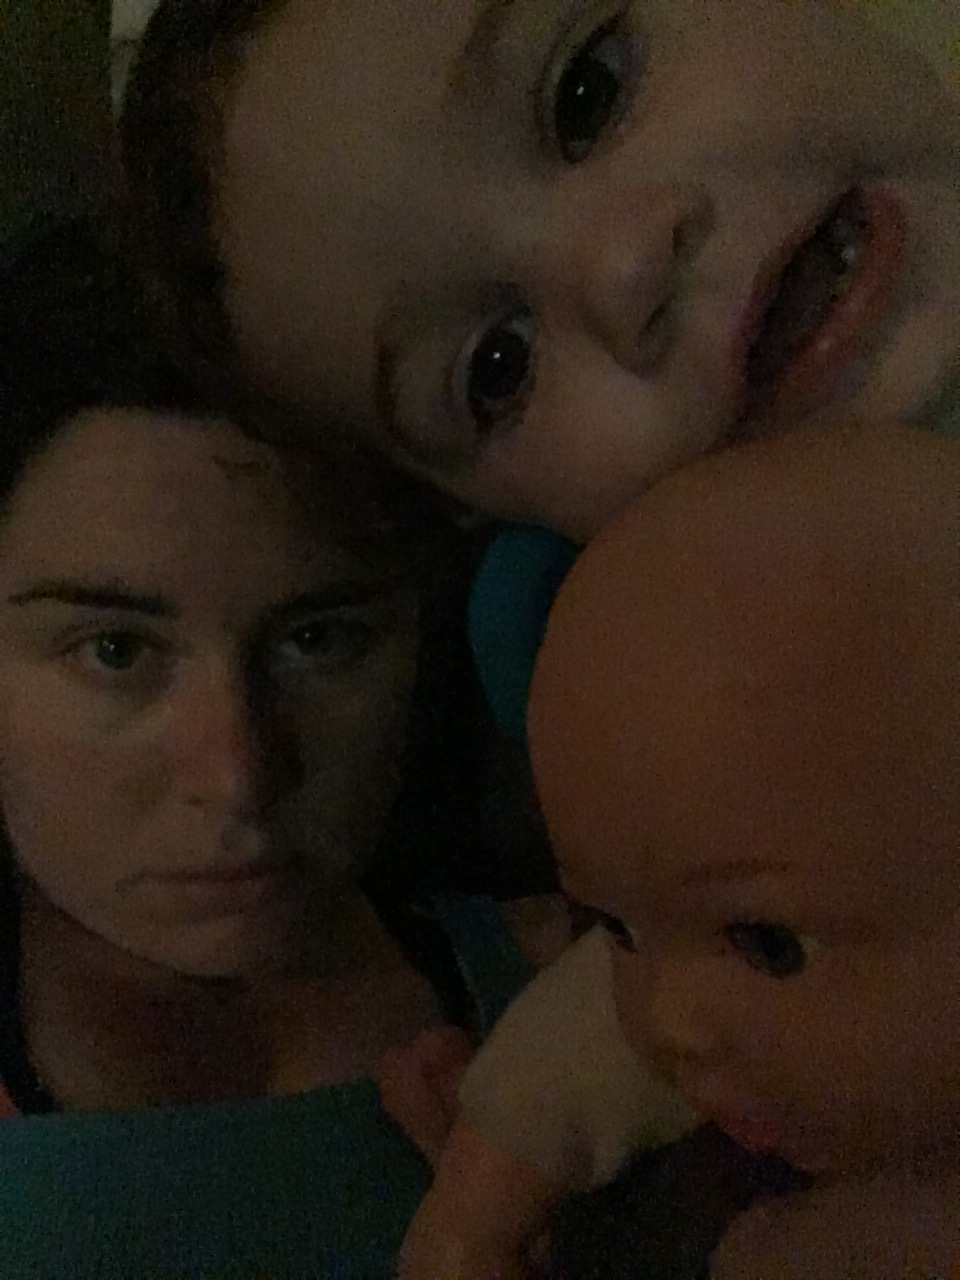 When it's 10:30 pm and your child is still wide awake...